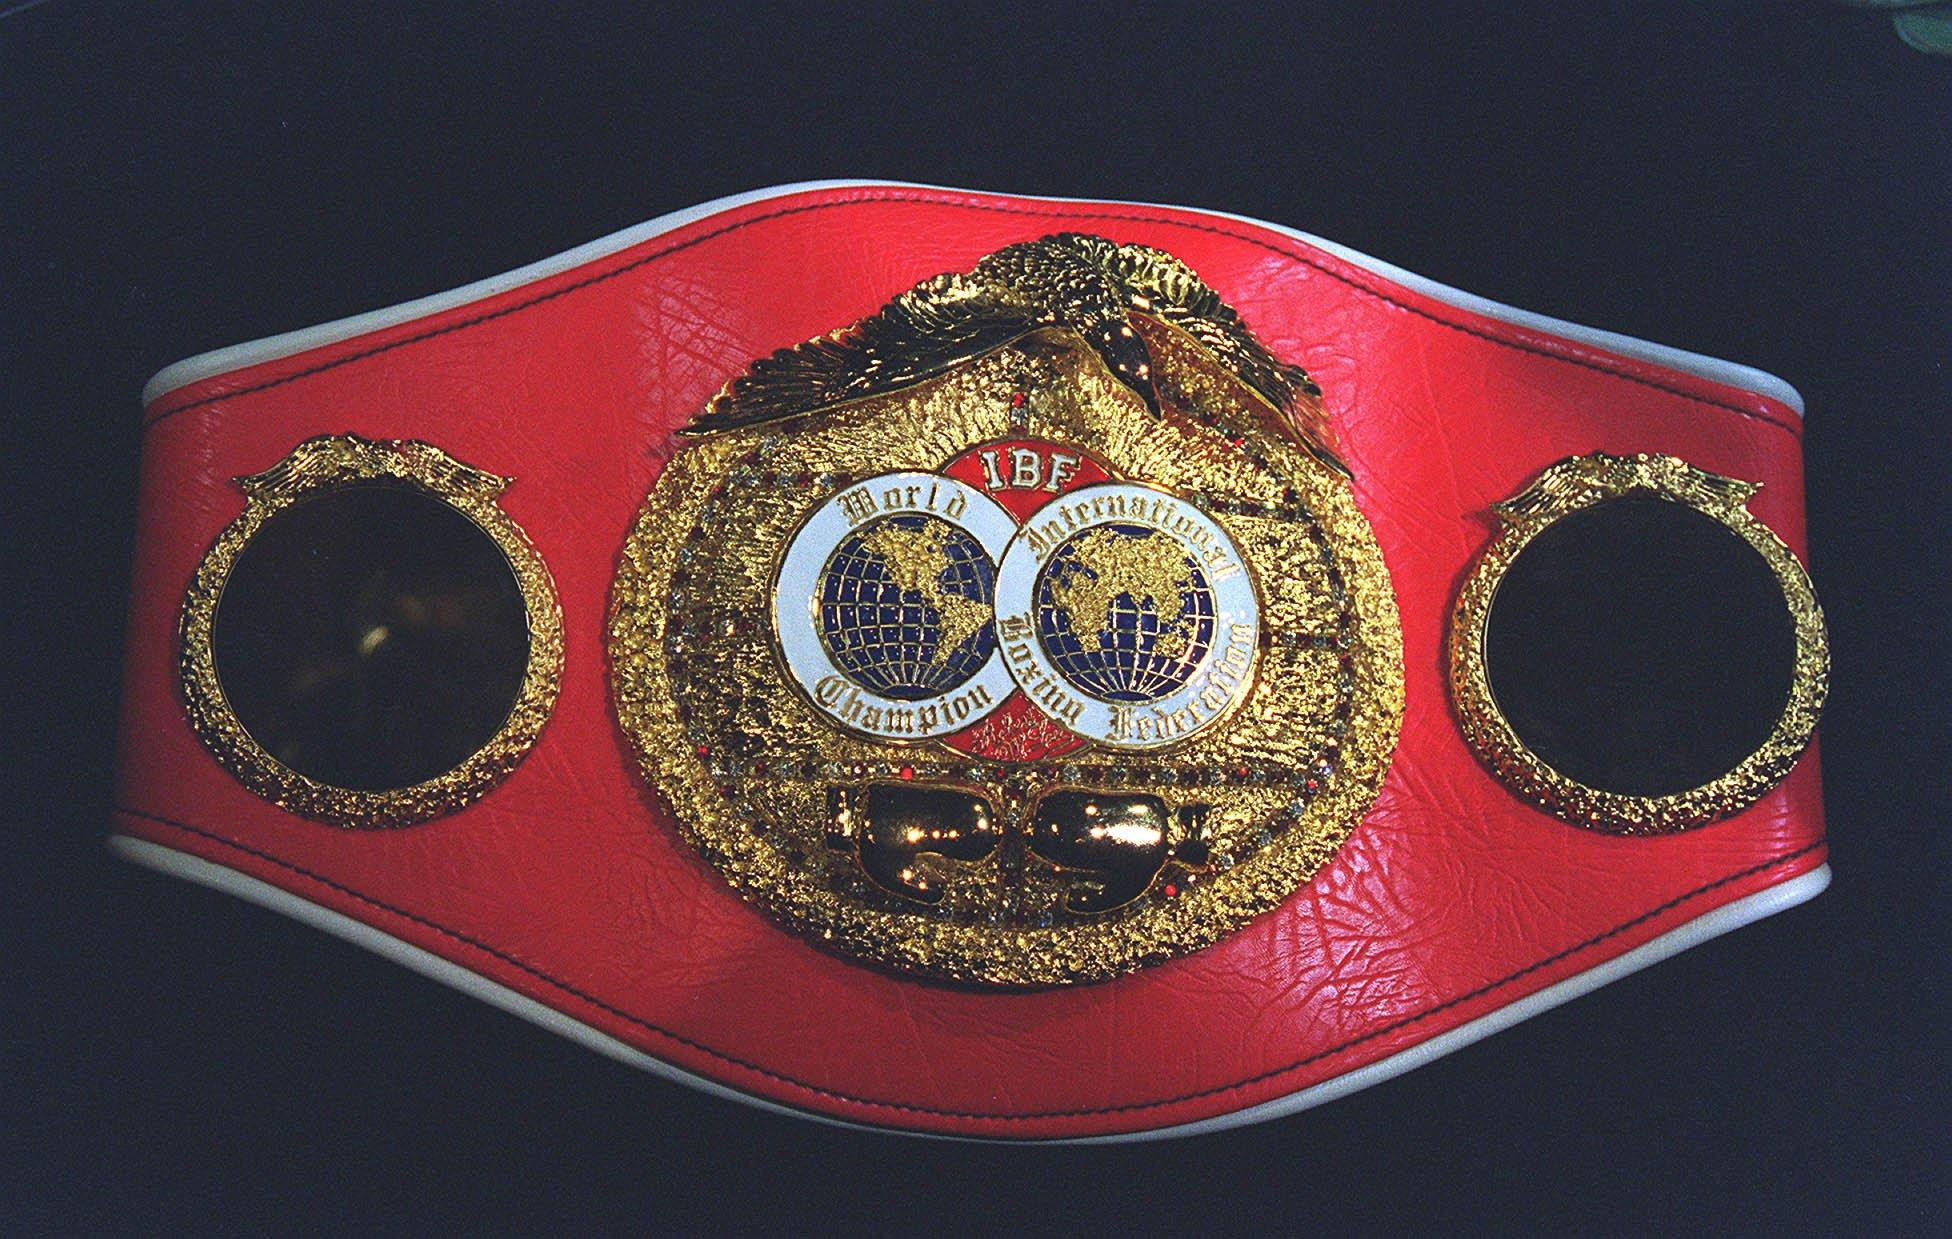 The IBF is a sanctioning body founded in 1983 - they are one of the four major organisations - their world title looks similar to the European strap